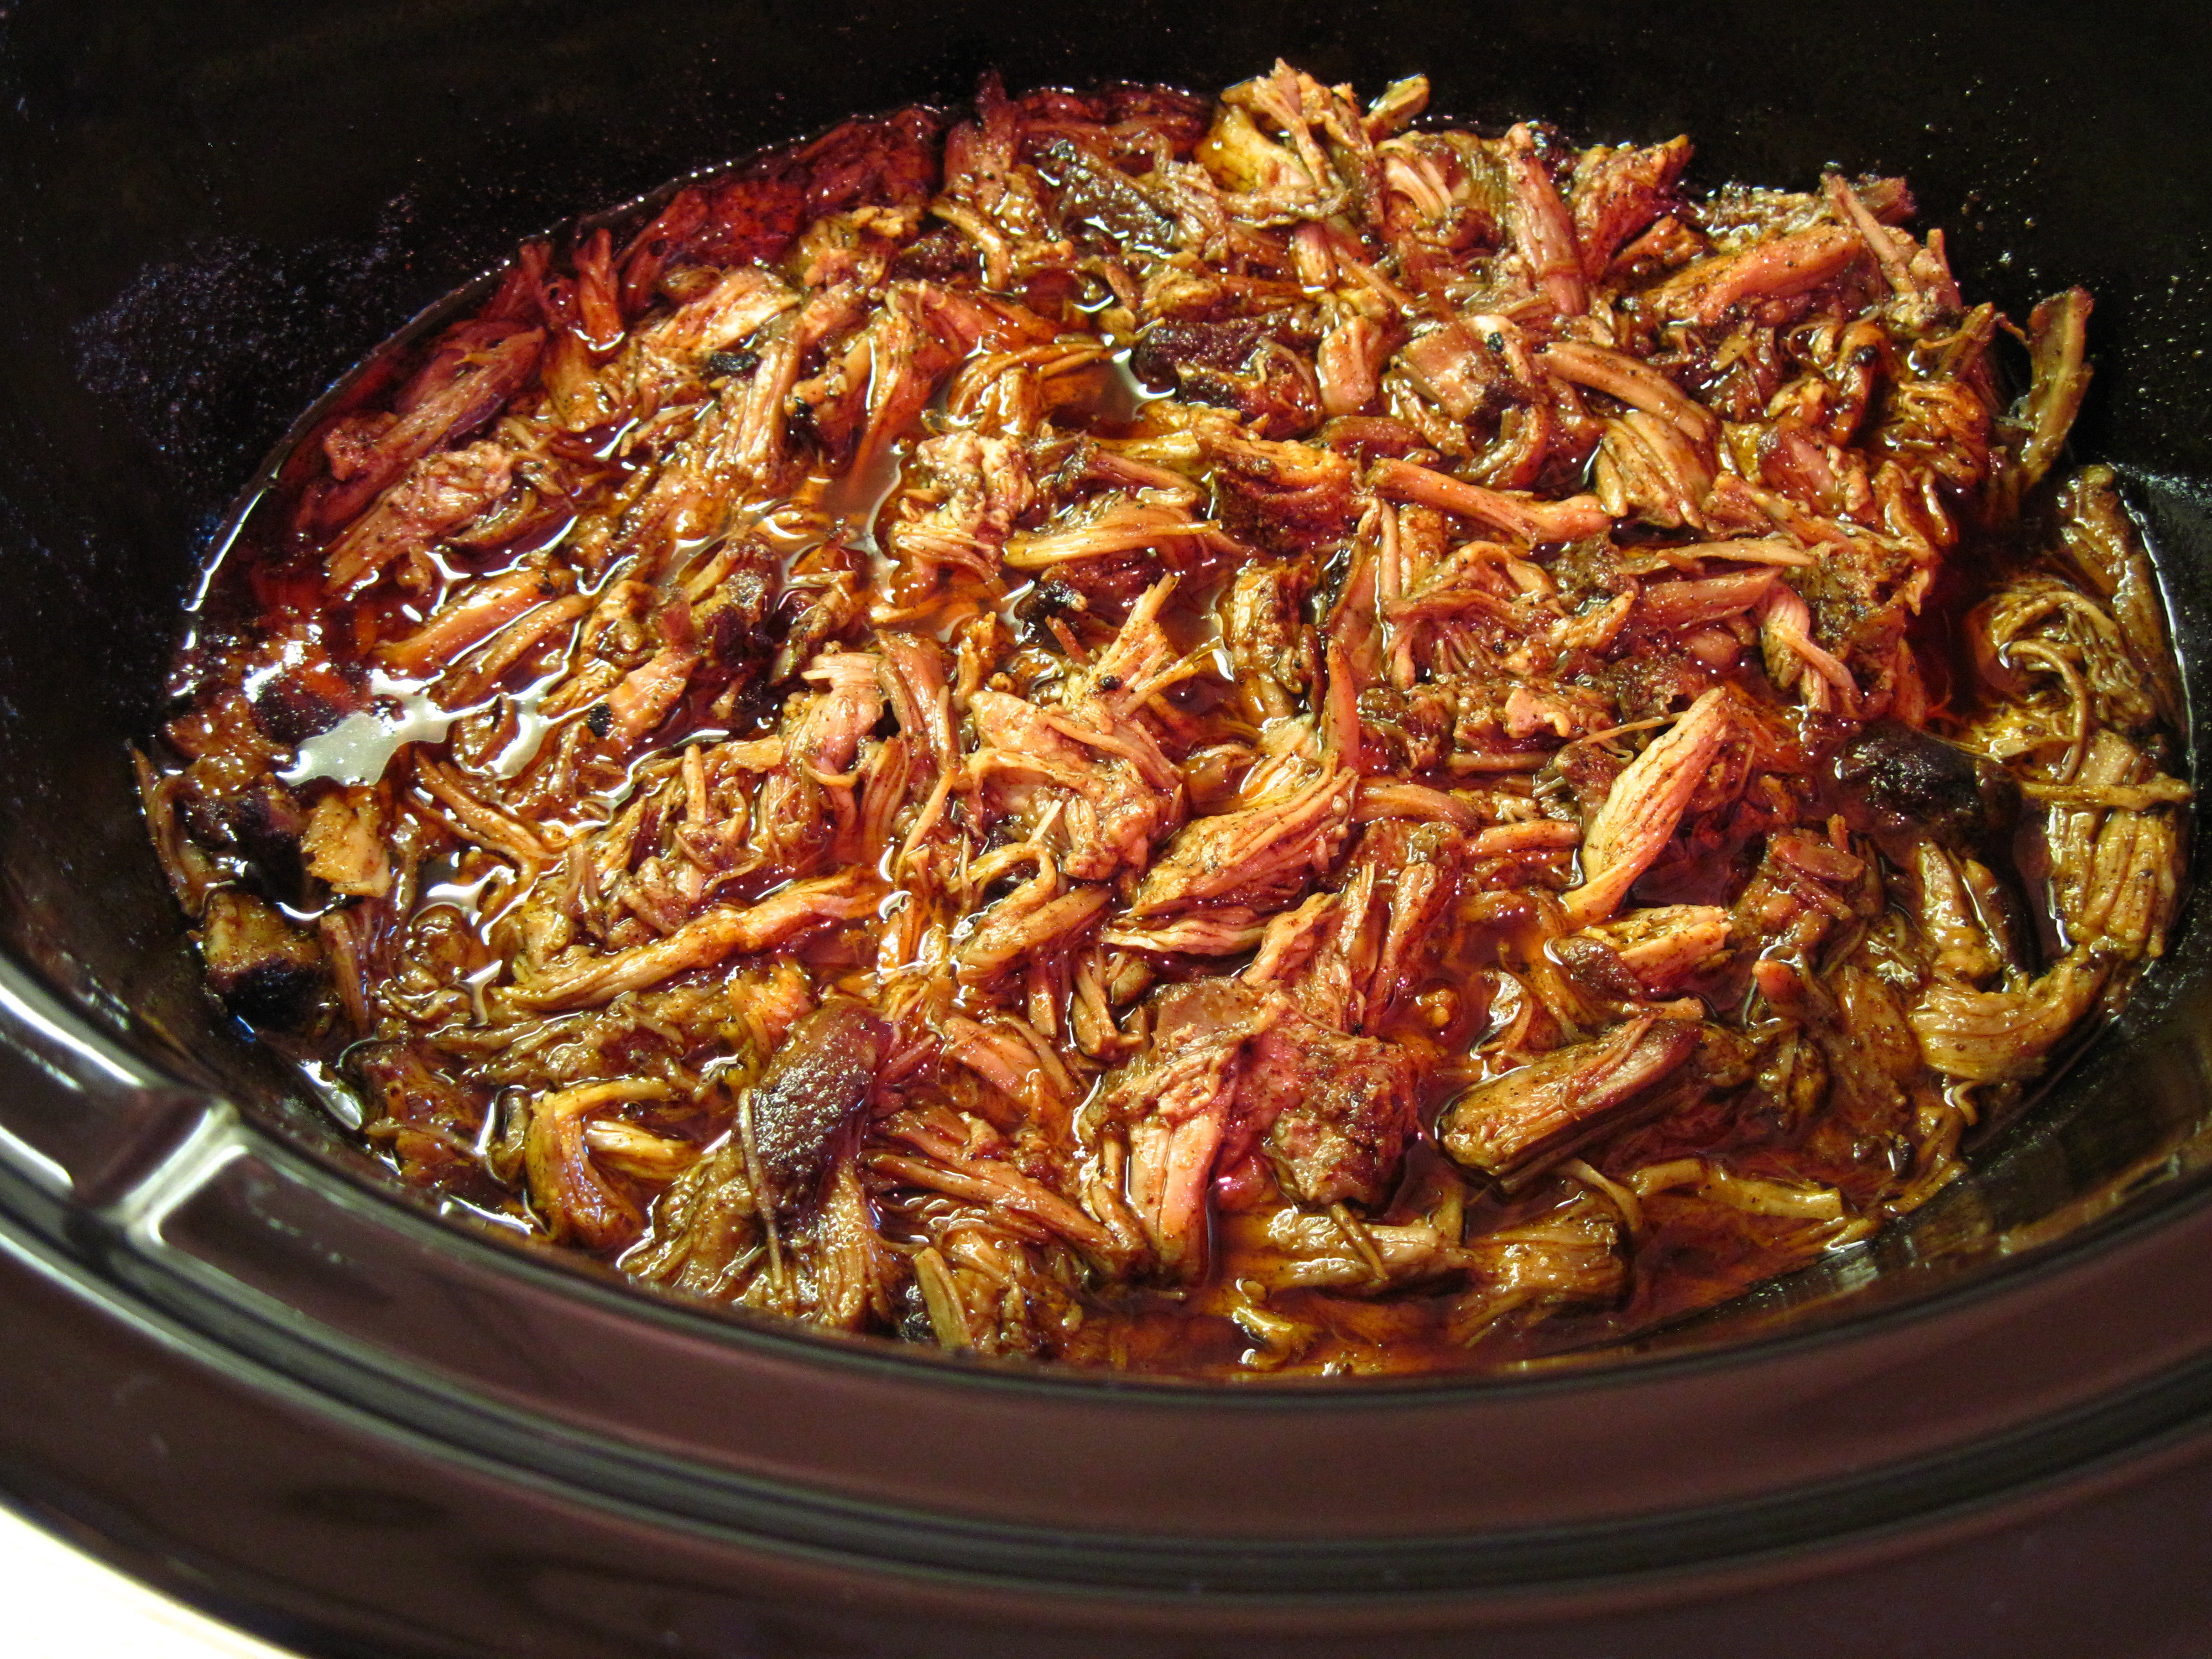 Mexican recipe with pulled pork